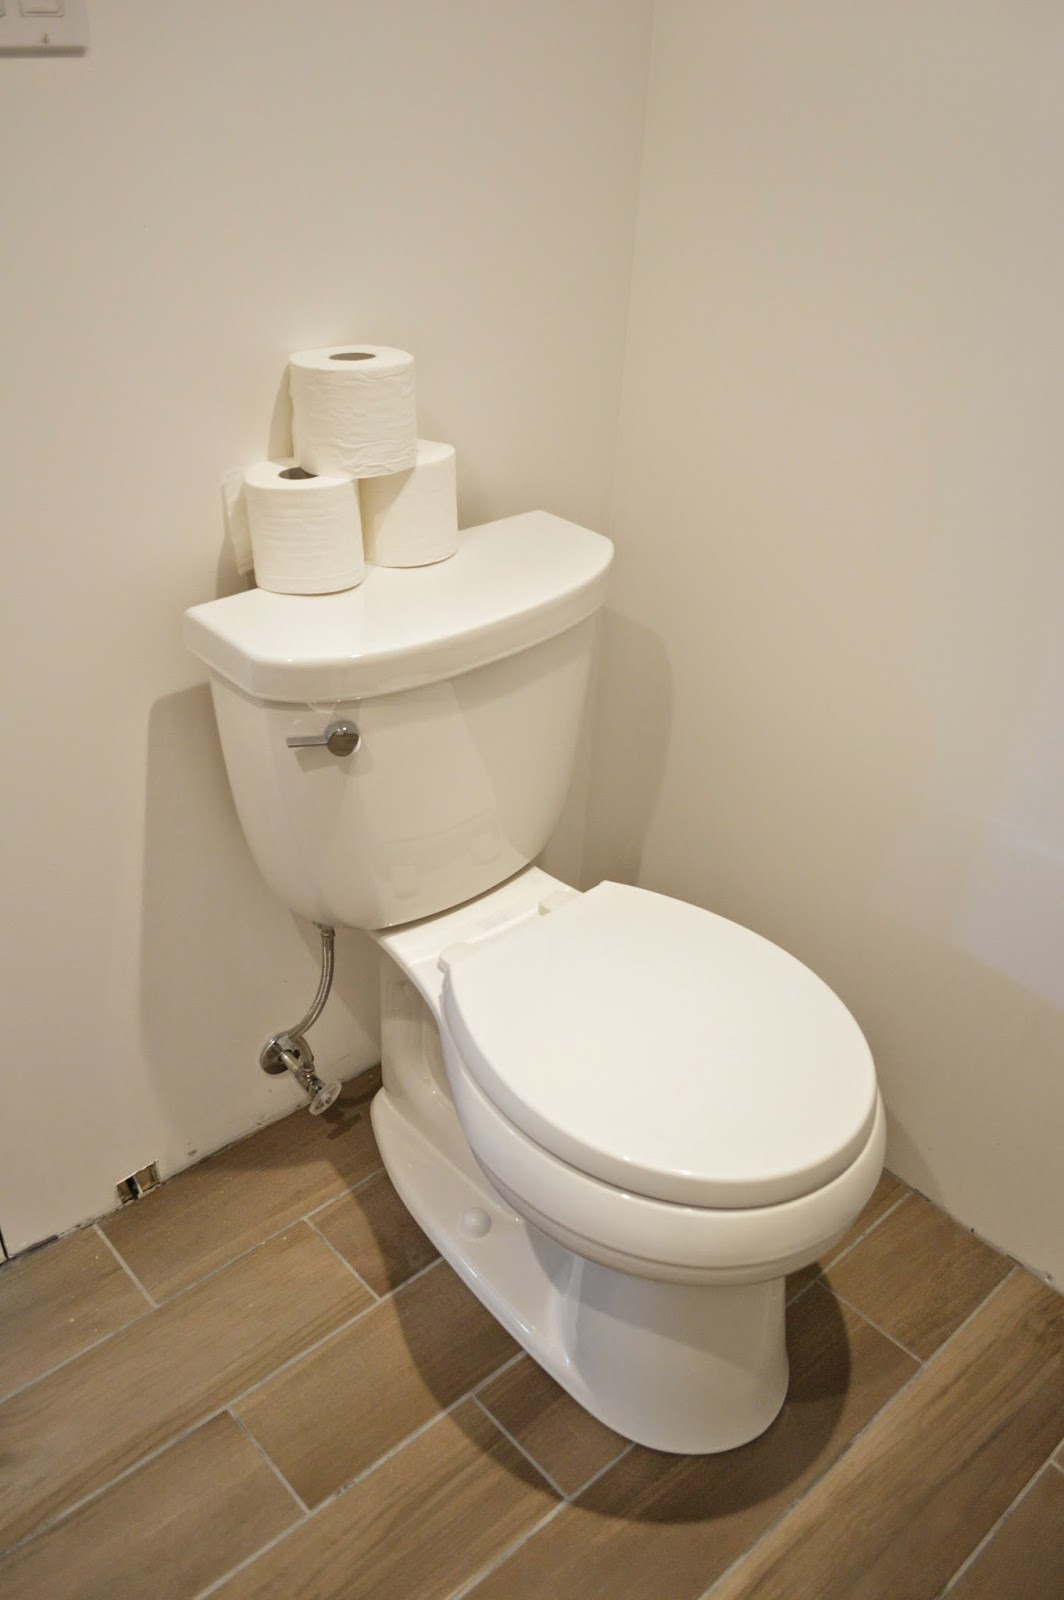 This Kind Handyman And I The Toilet And Floor The